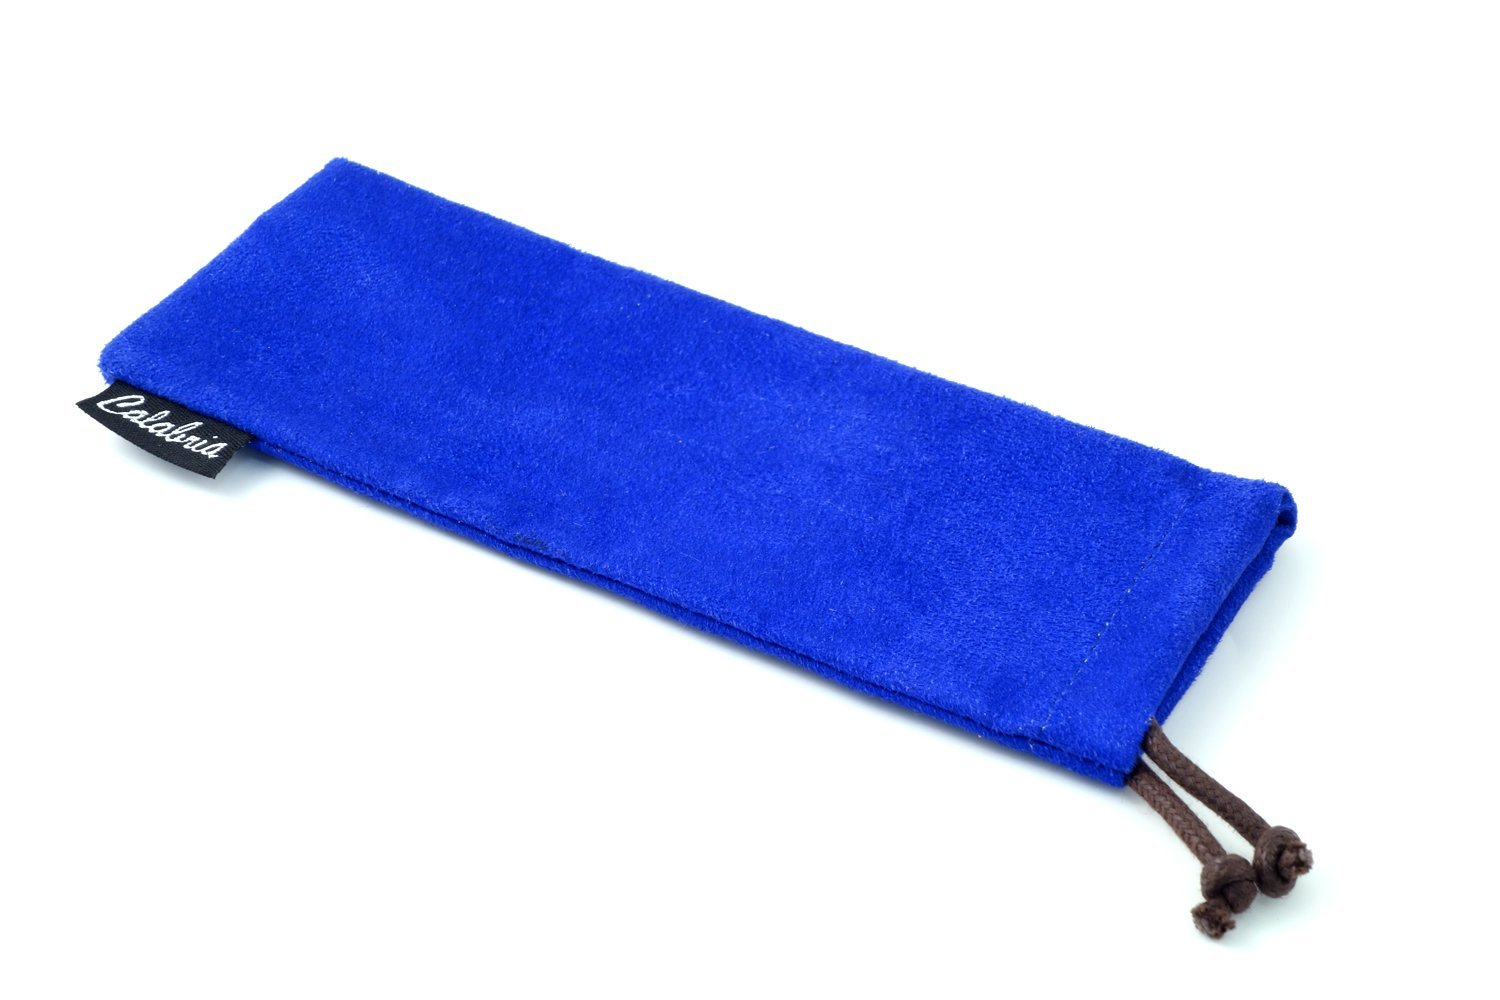 Chamois Drawsting Eyeglass Case/Cleaning Pouch in Blue C-347 6.25